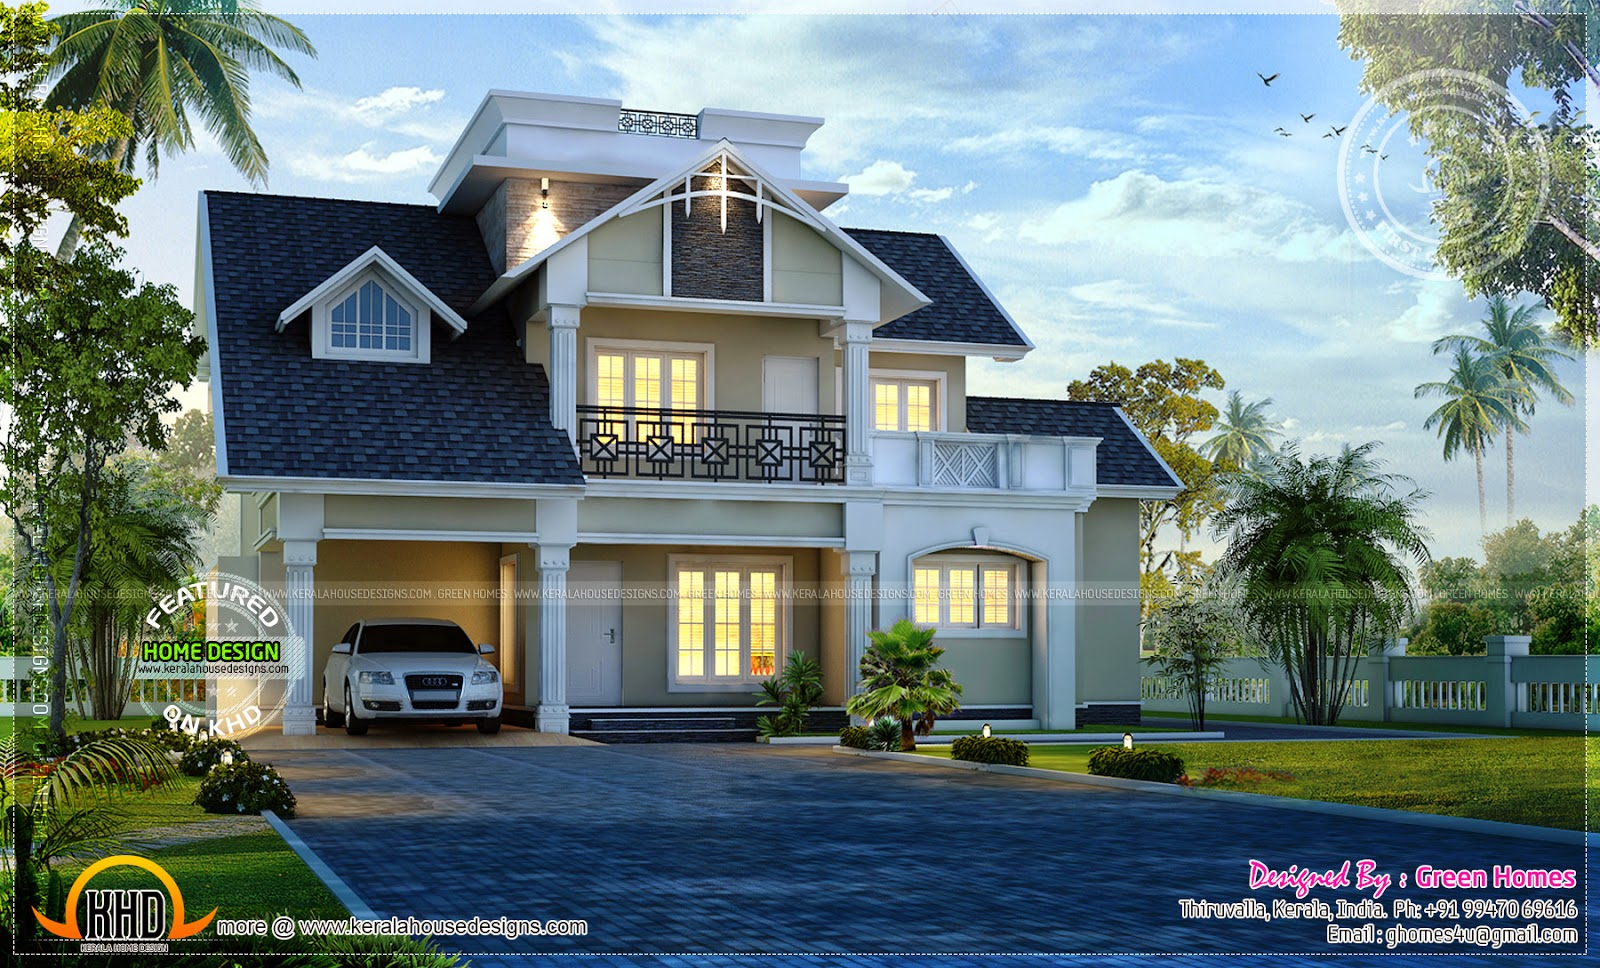 Awesome modern house exterior kerala home design and for Kerala home designs contemporary